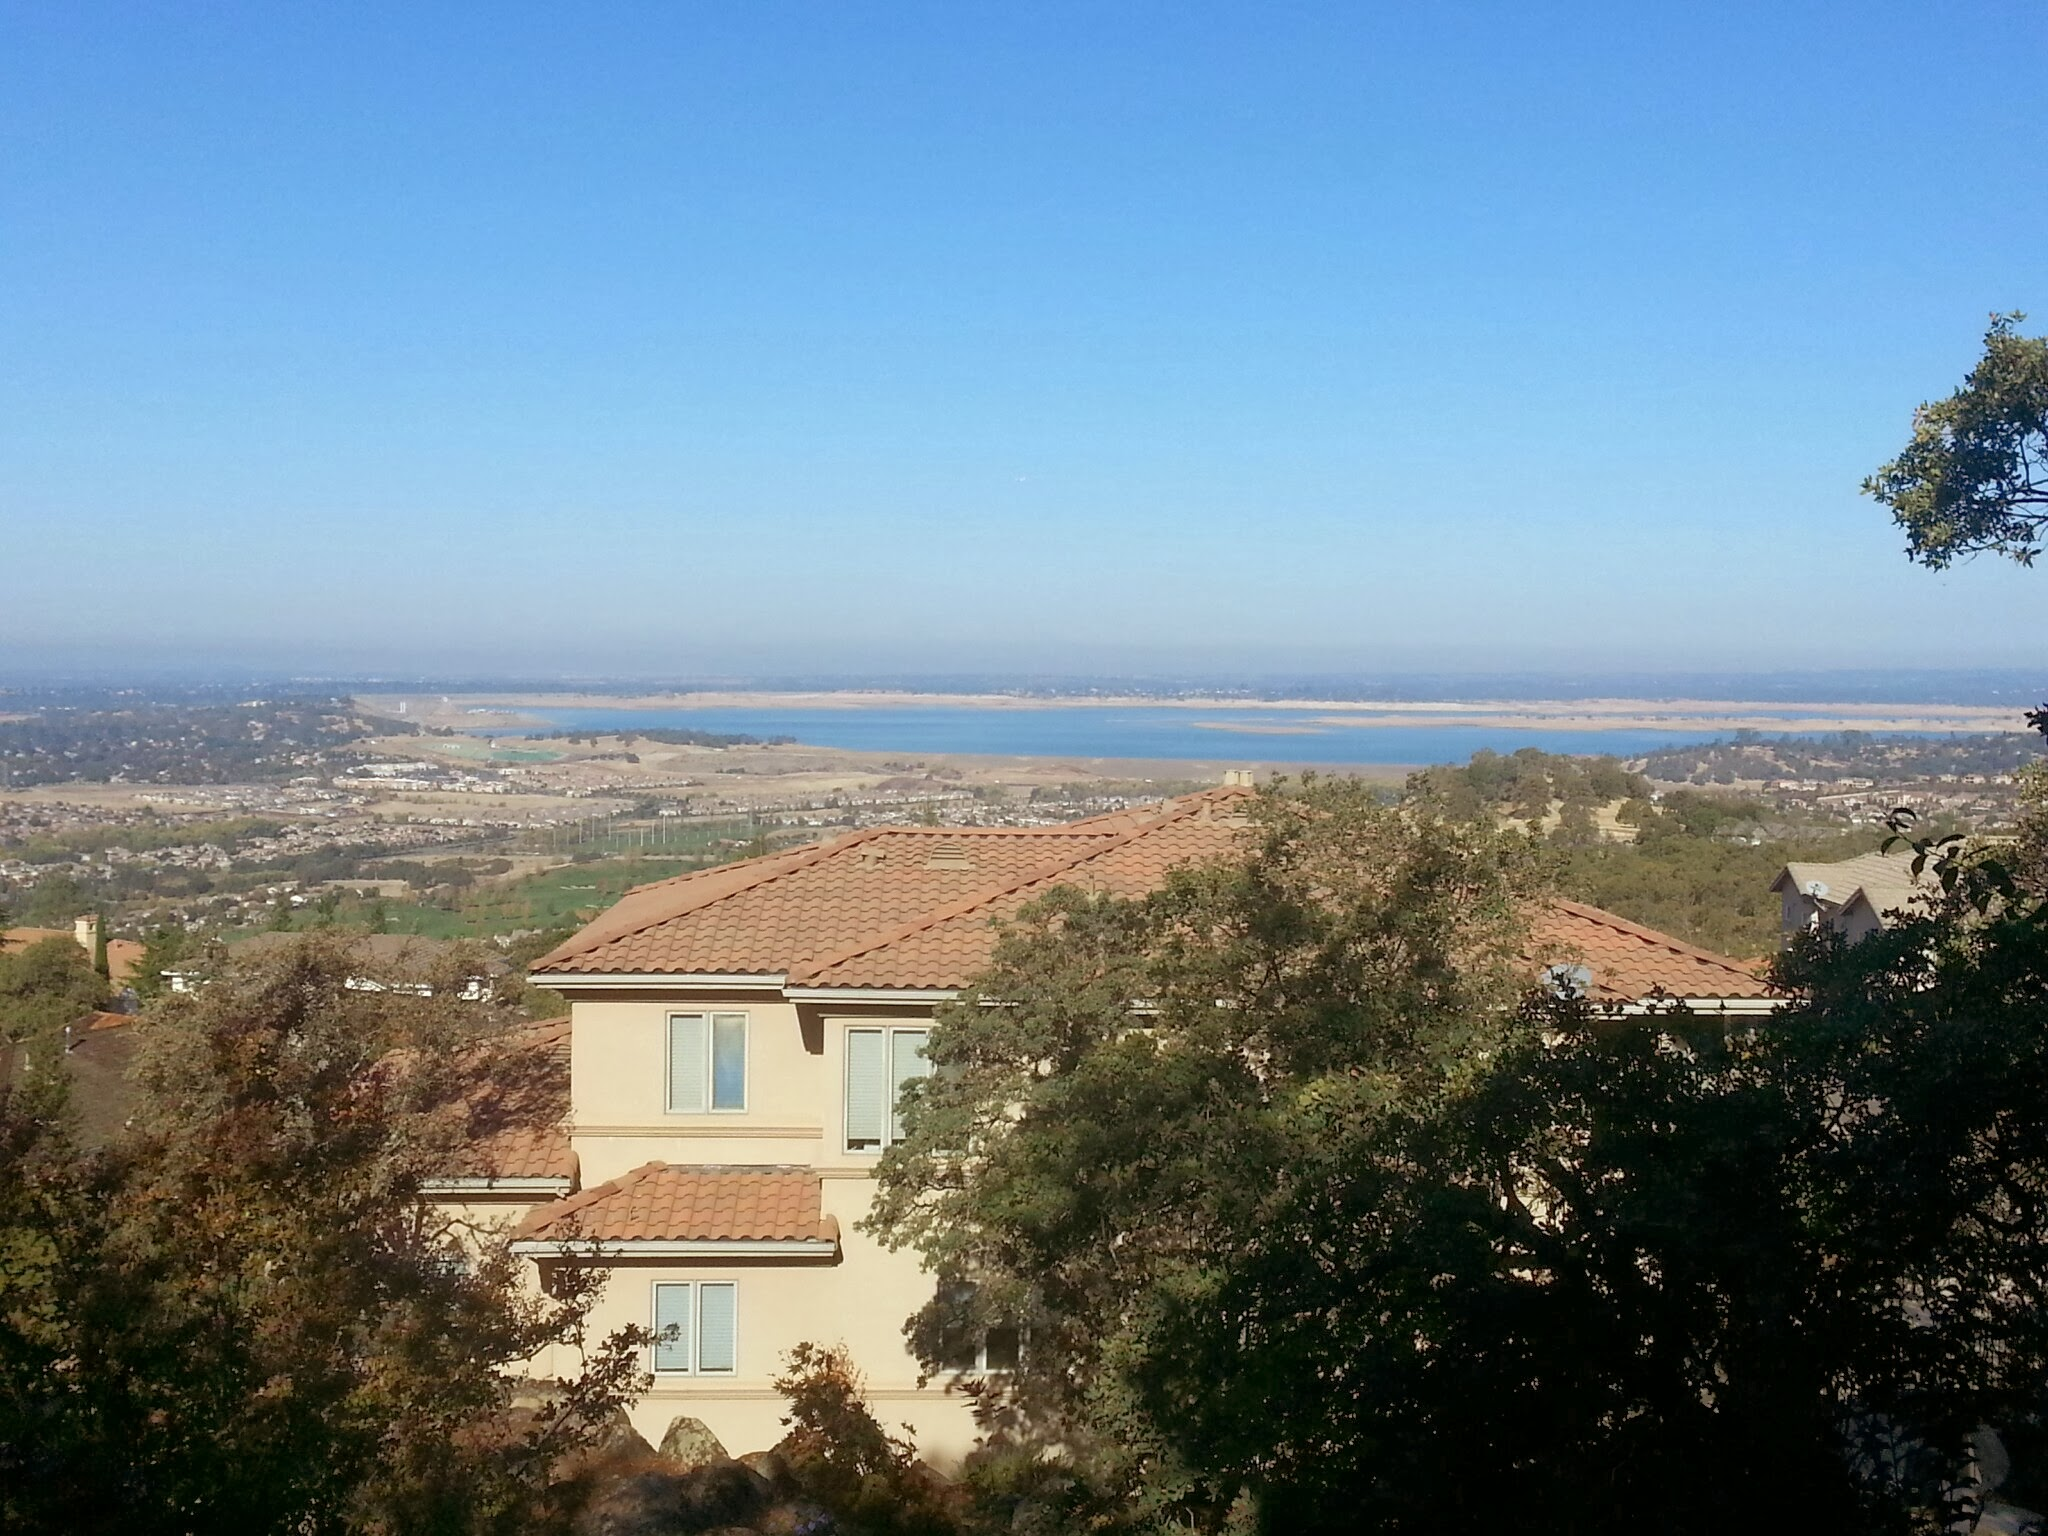 Views from Ridgview - Folsom Lake